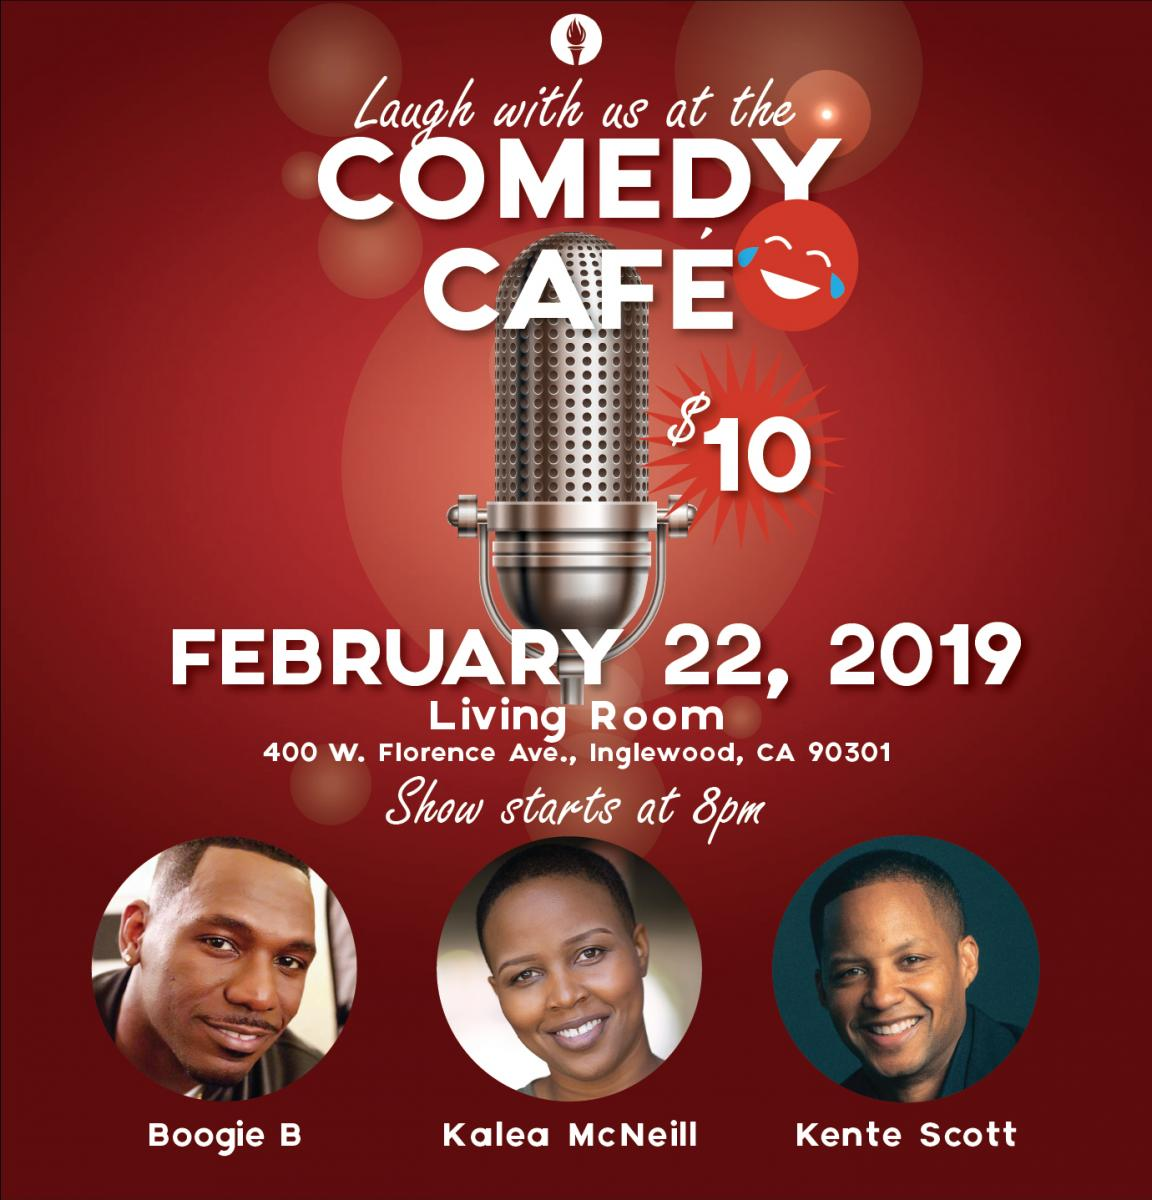 comedy-cafe-promo-Feb-2019.jpg